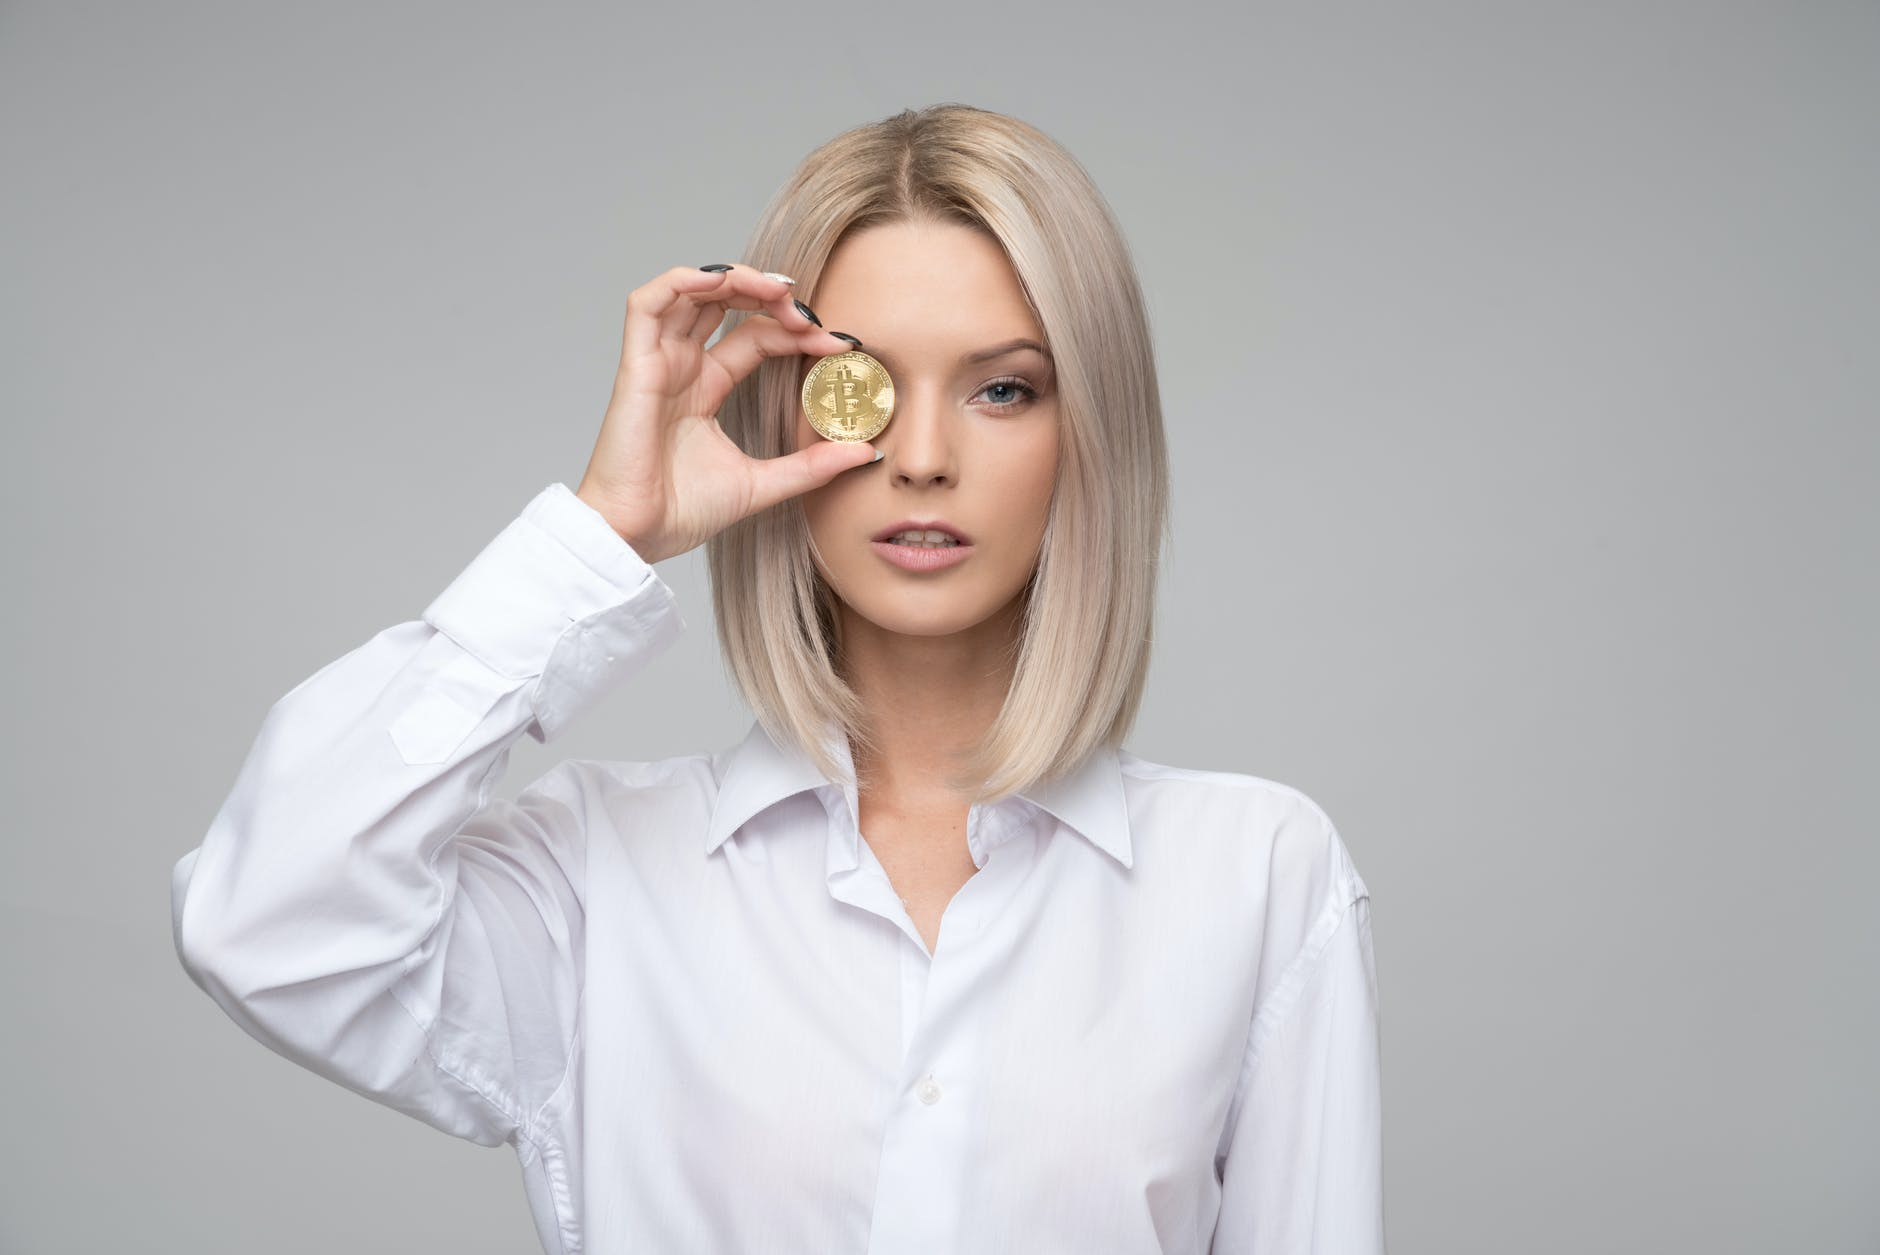 Bitcoin (BTC) expected to be decades best performing asset